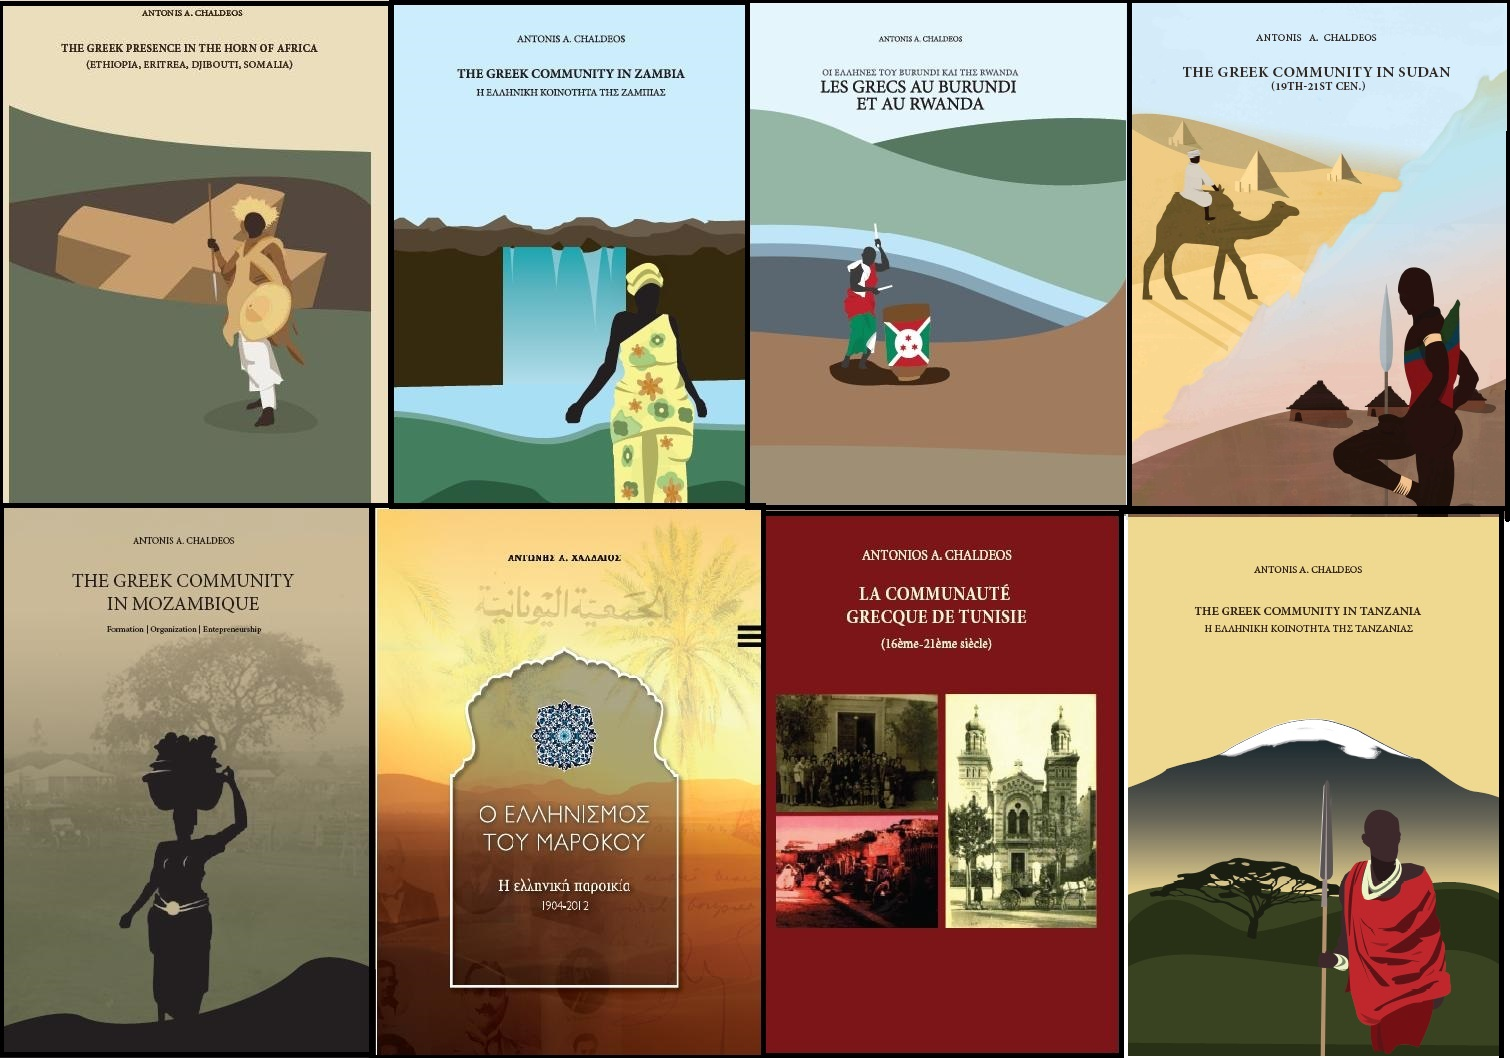 Books about the Greeks in Africa